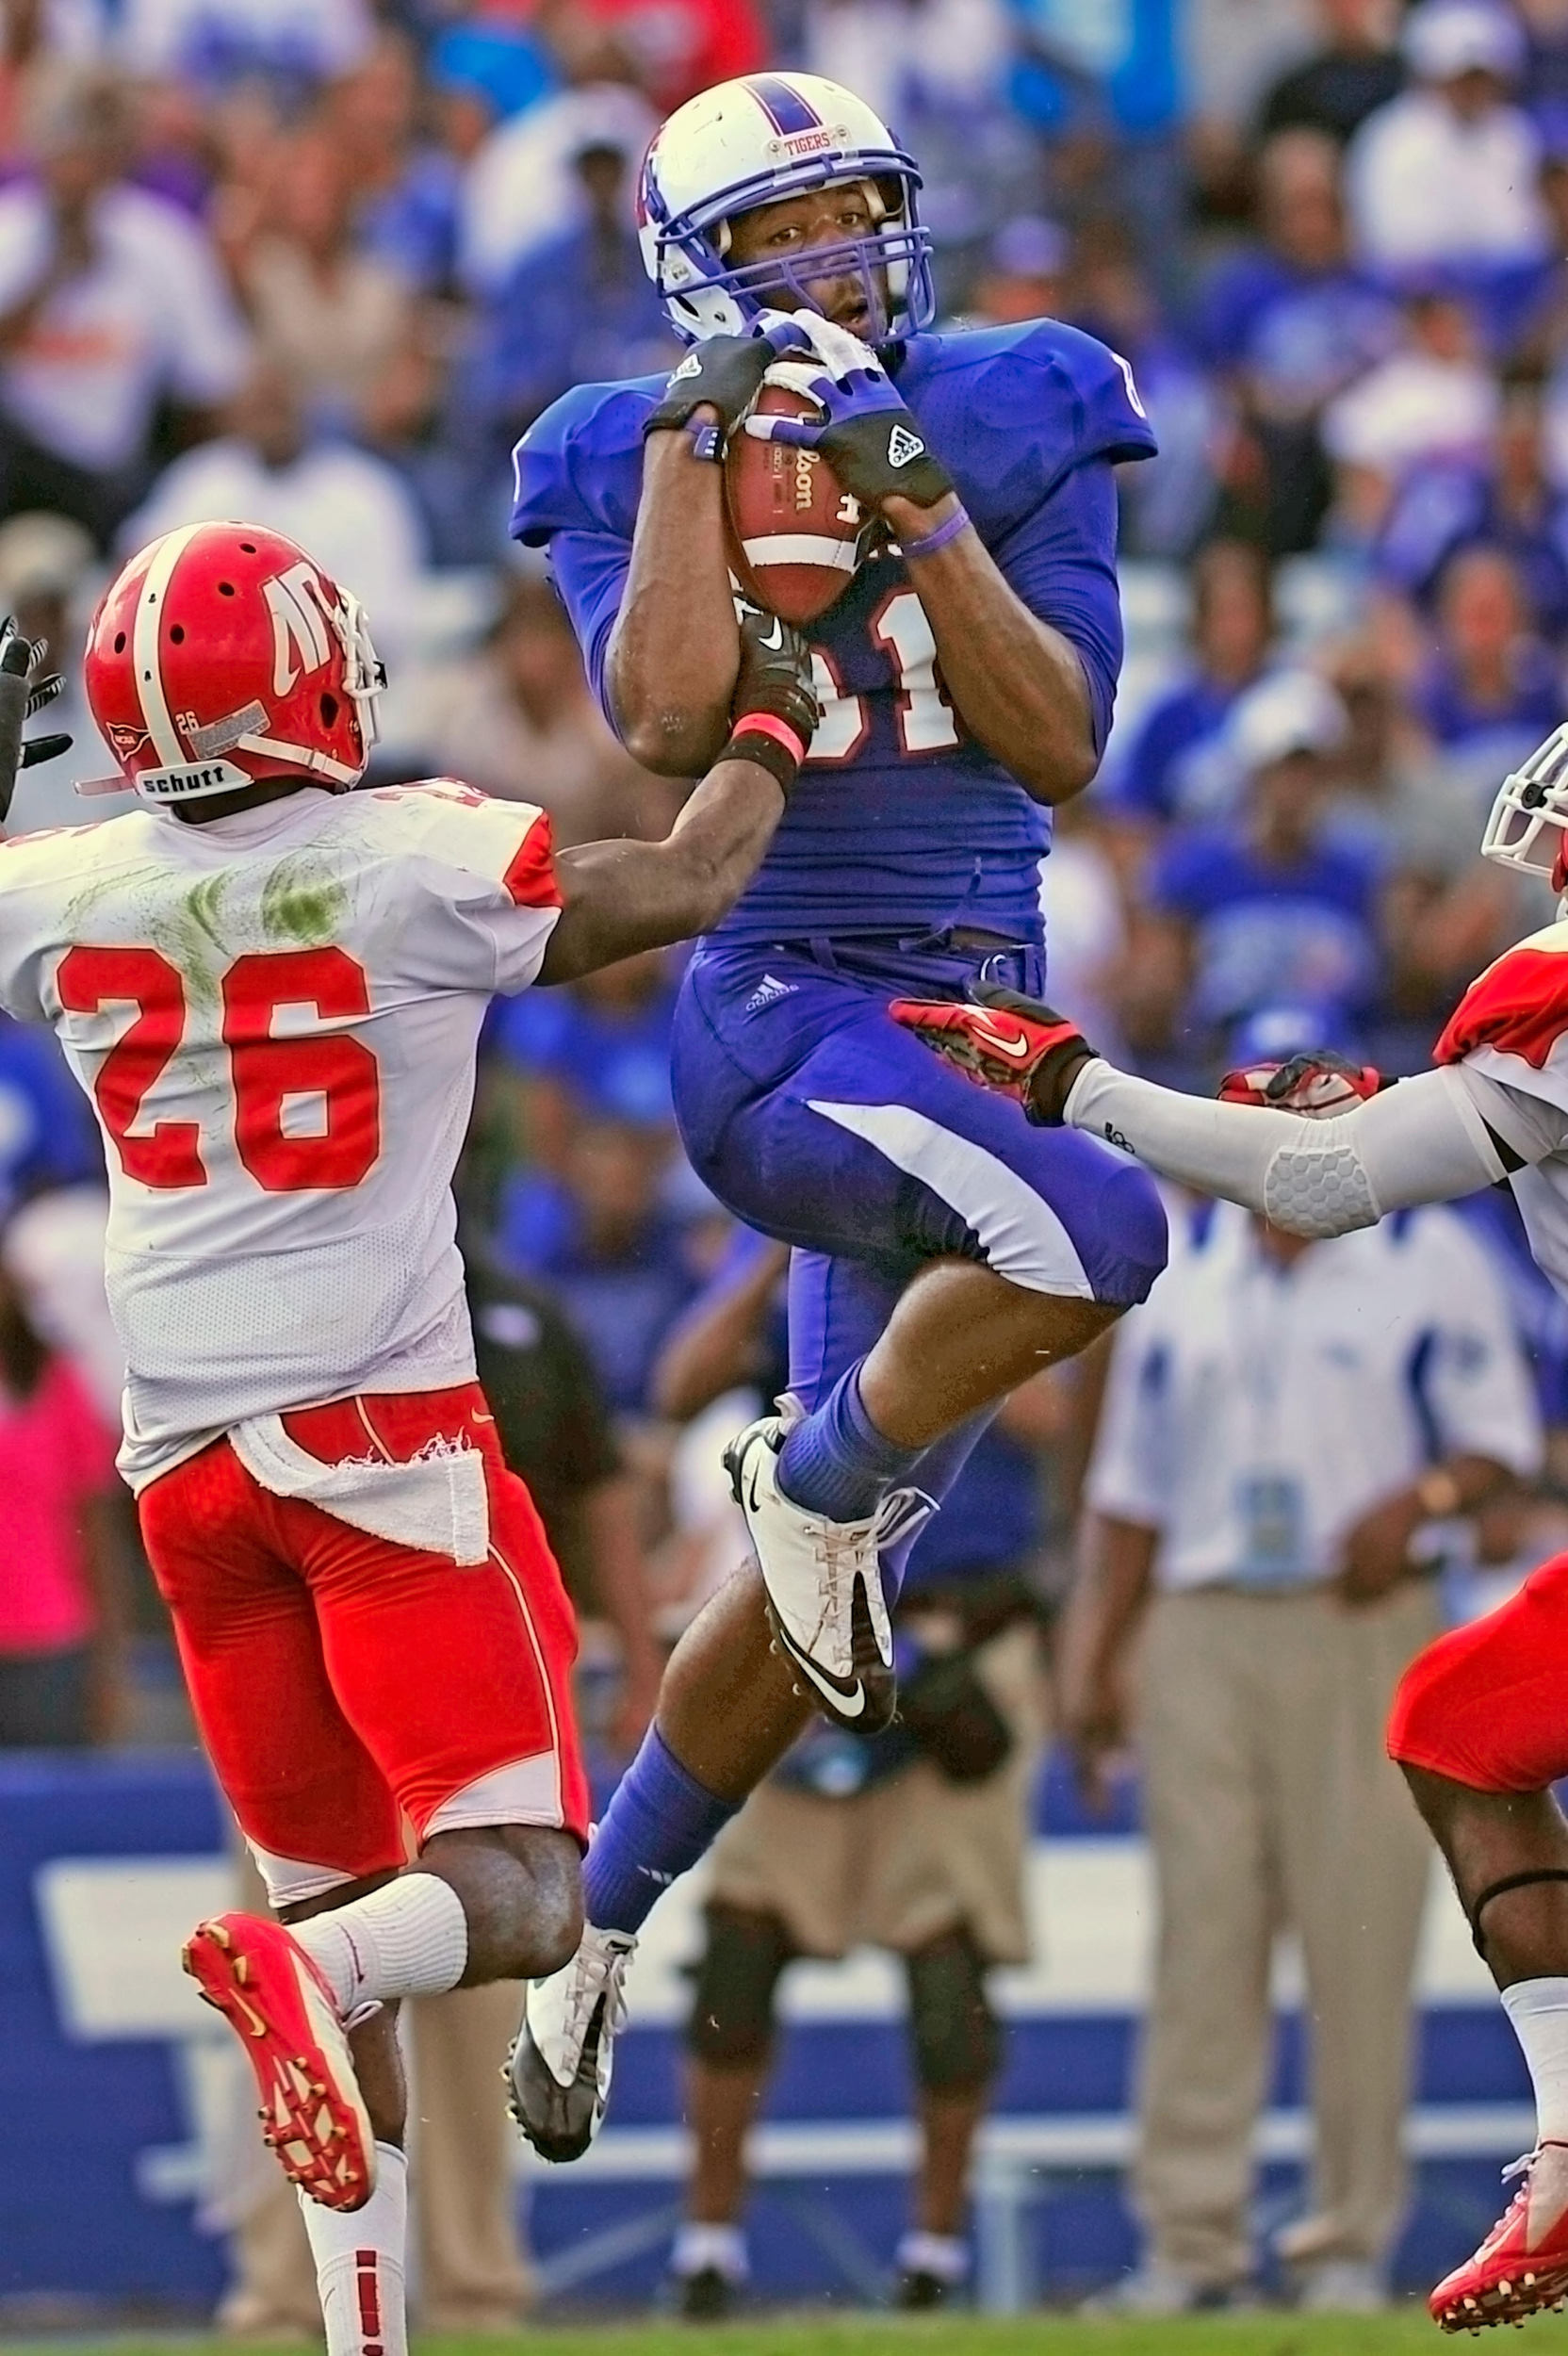 Tennessee State University's Joe Bowens (81) pulls in a pass thrown by quarterback Michael German in the second half against Austin Peay at Hale Stadium September 15, 2012 in Nashville, Tenn.